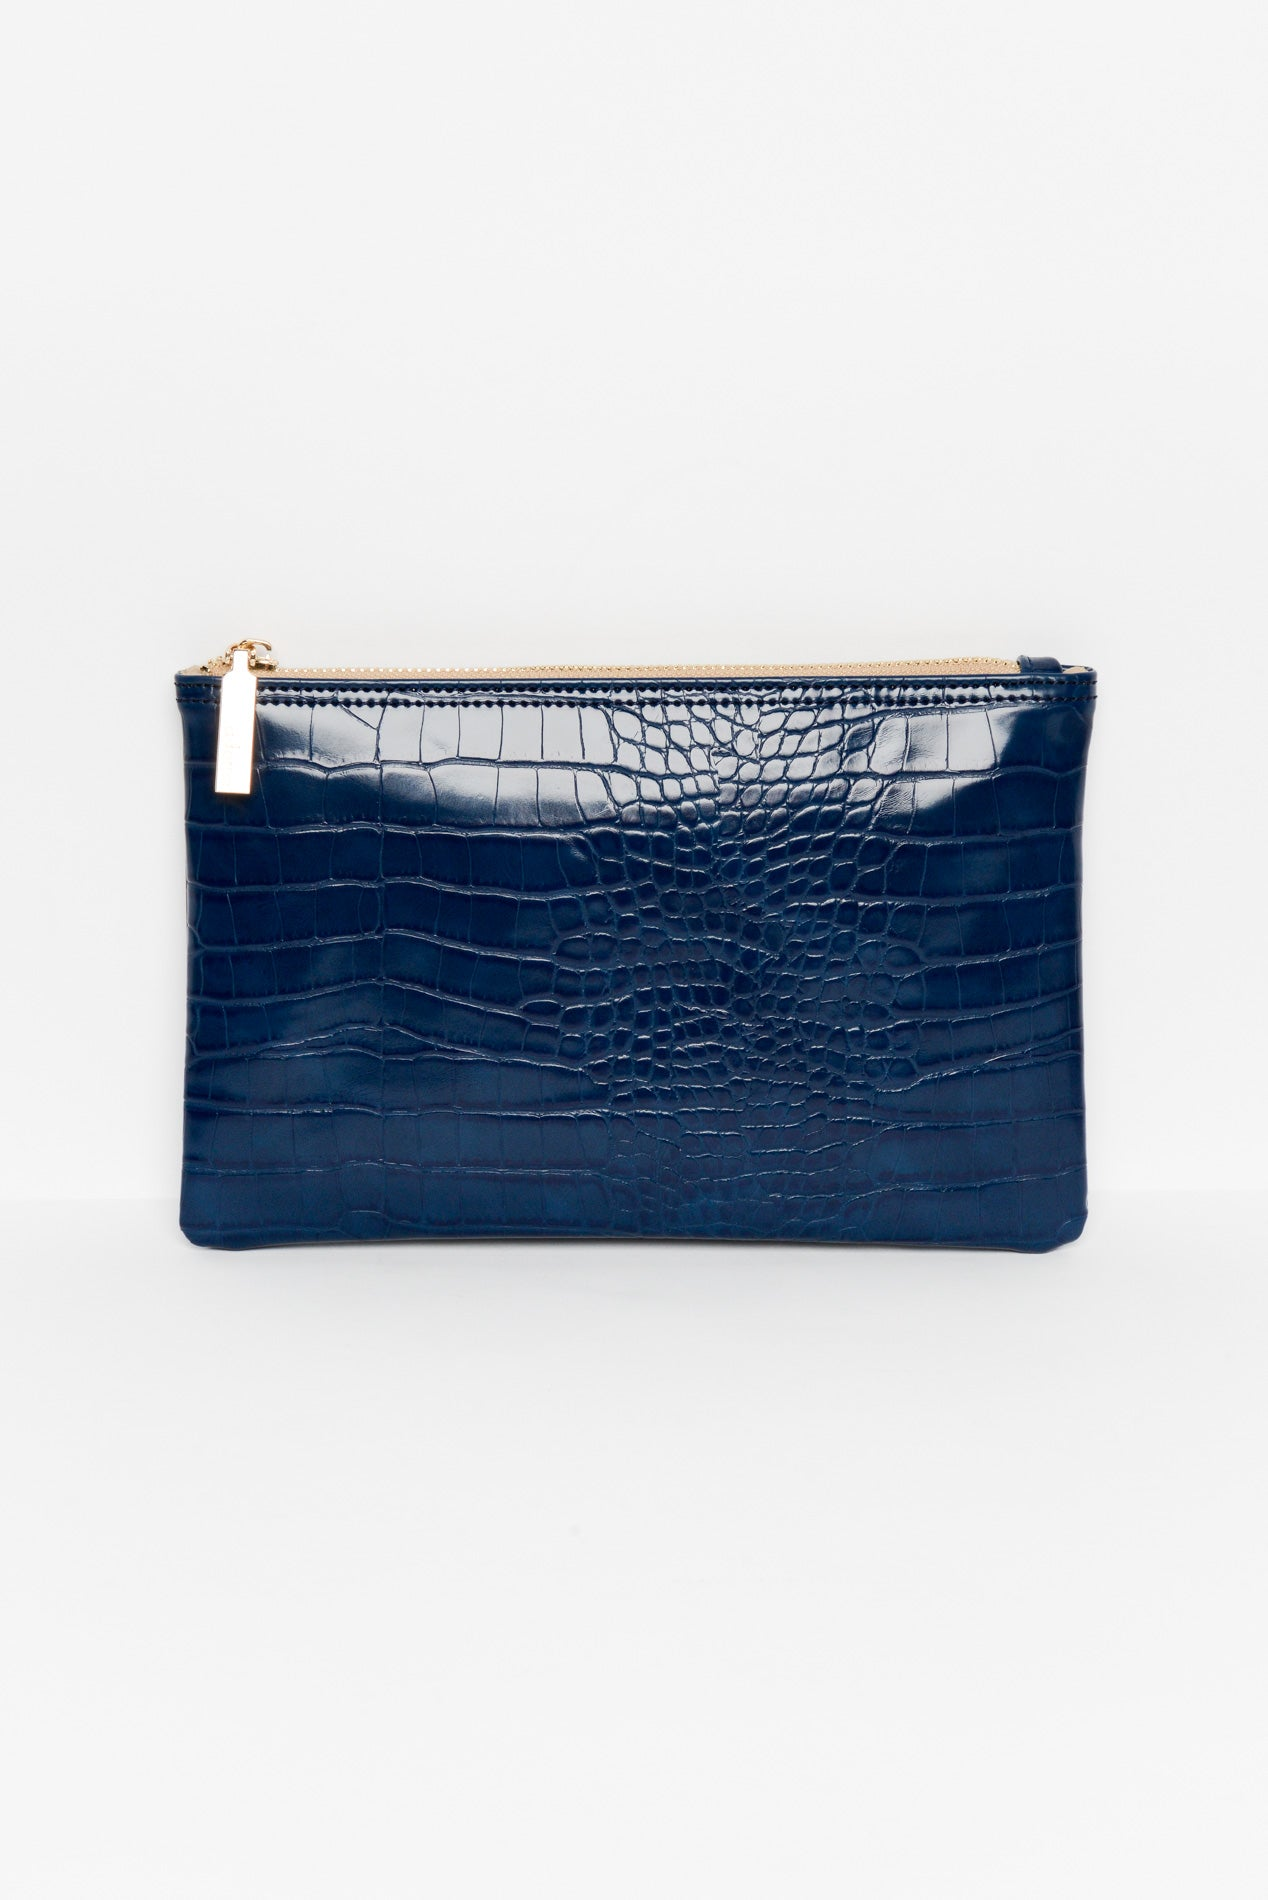 Navy Croc Zippie Clutch - Blue Bungalow